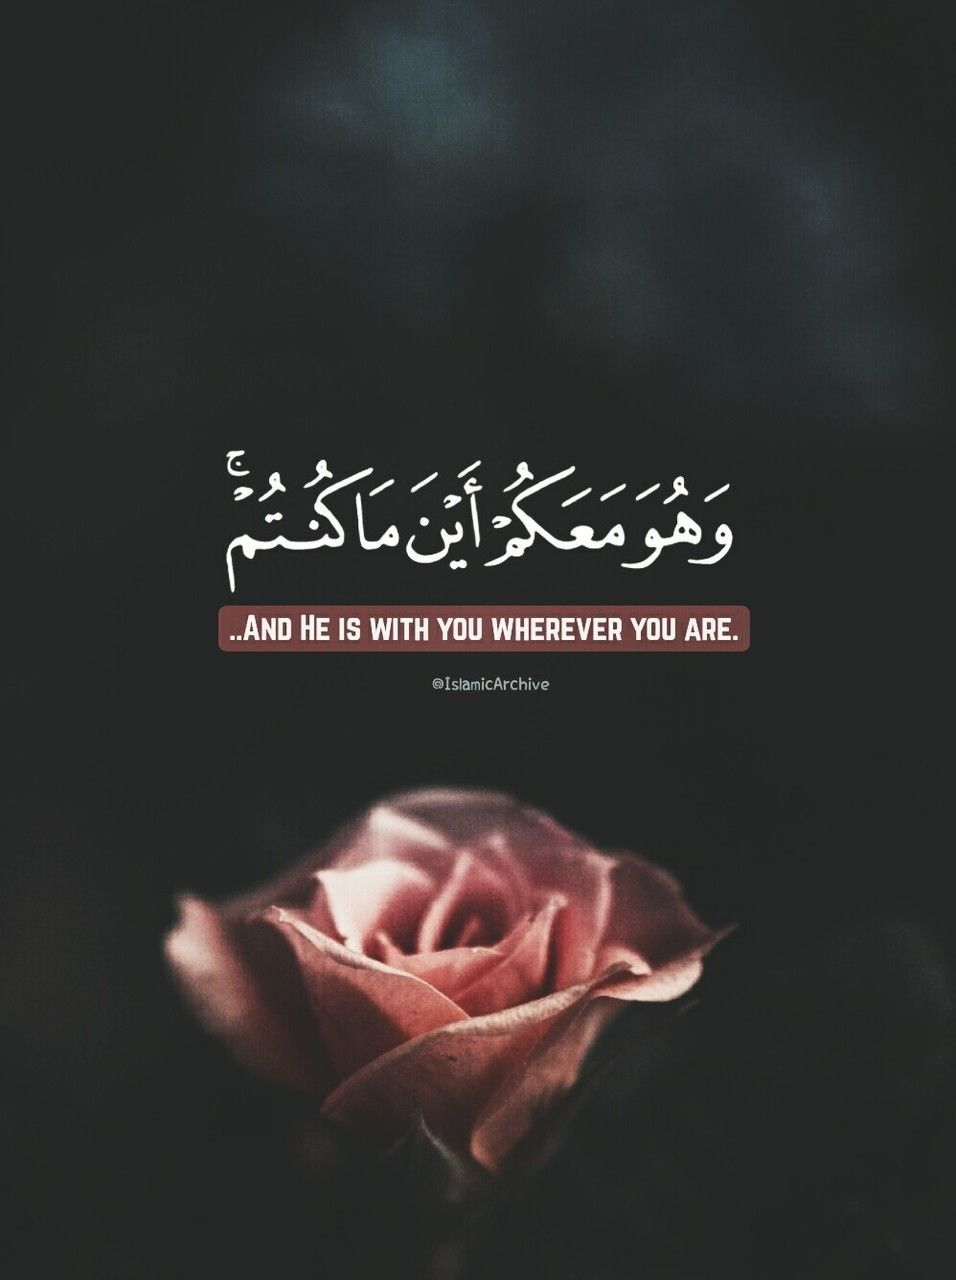 Uploaded By Islamic Archive Find Images And Videos About Islam And Allah On We Heart It The App Quran Quotes Verses Quran Quotes Quran Quotes Inspirational